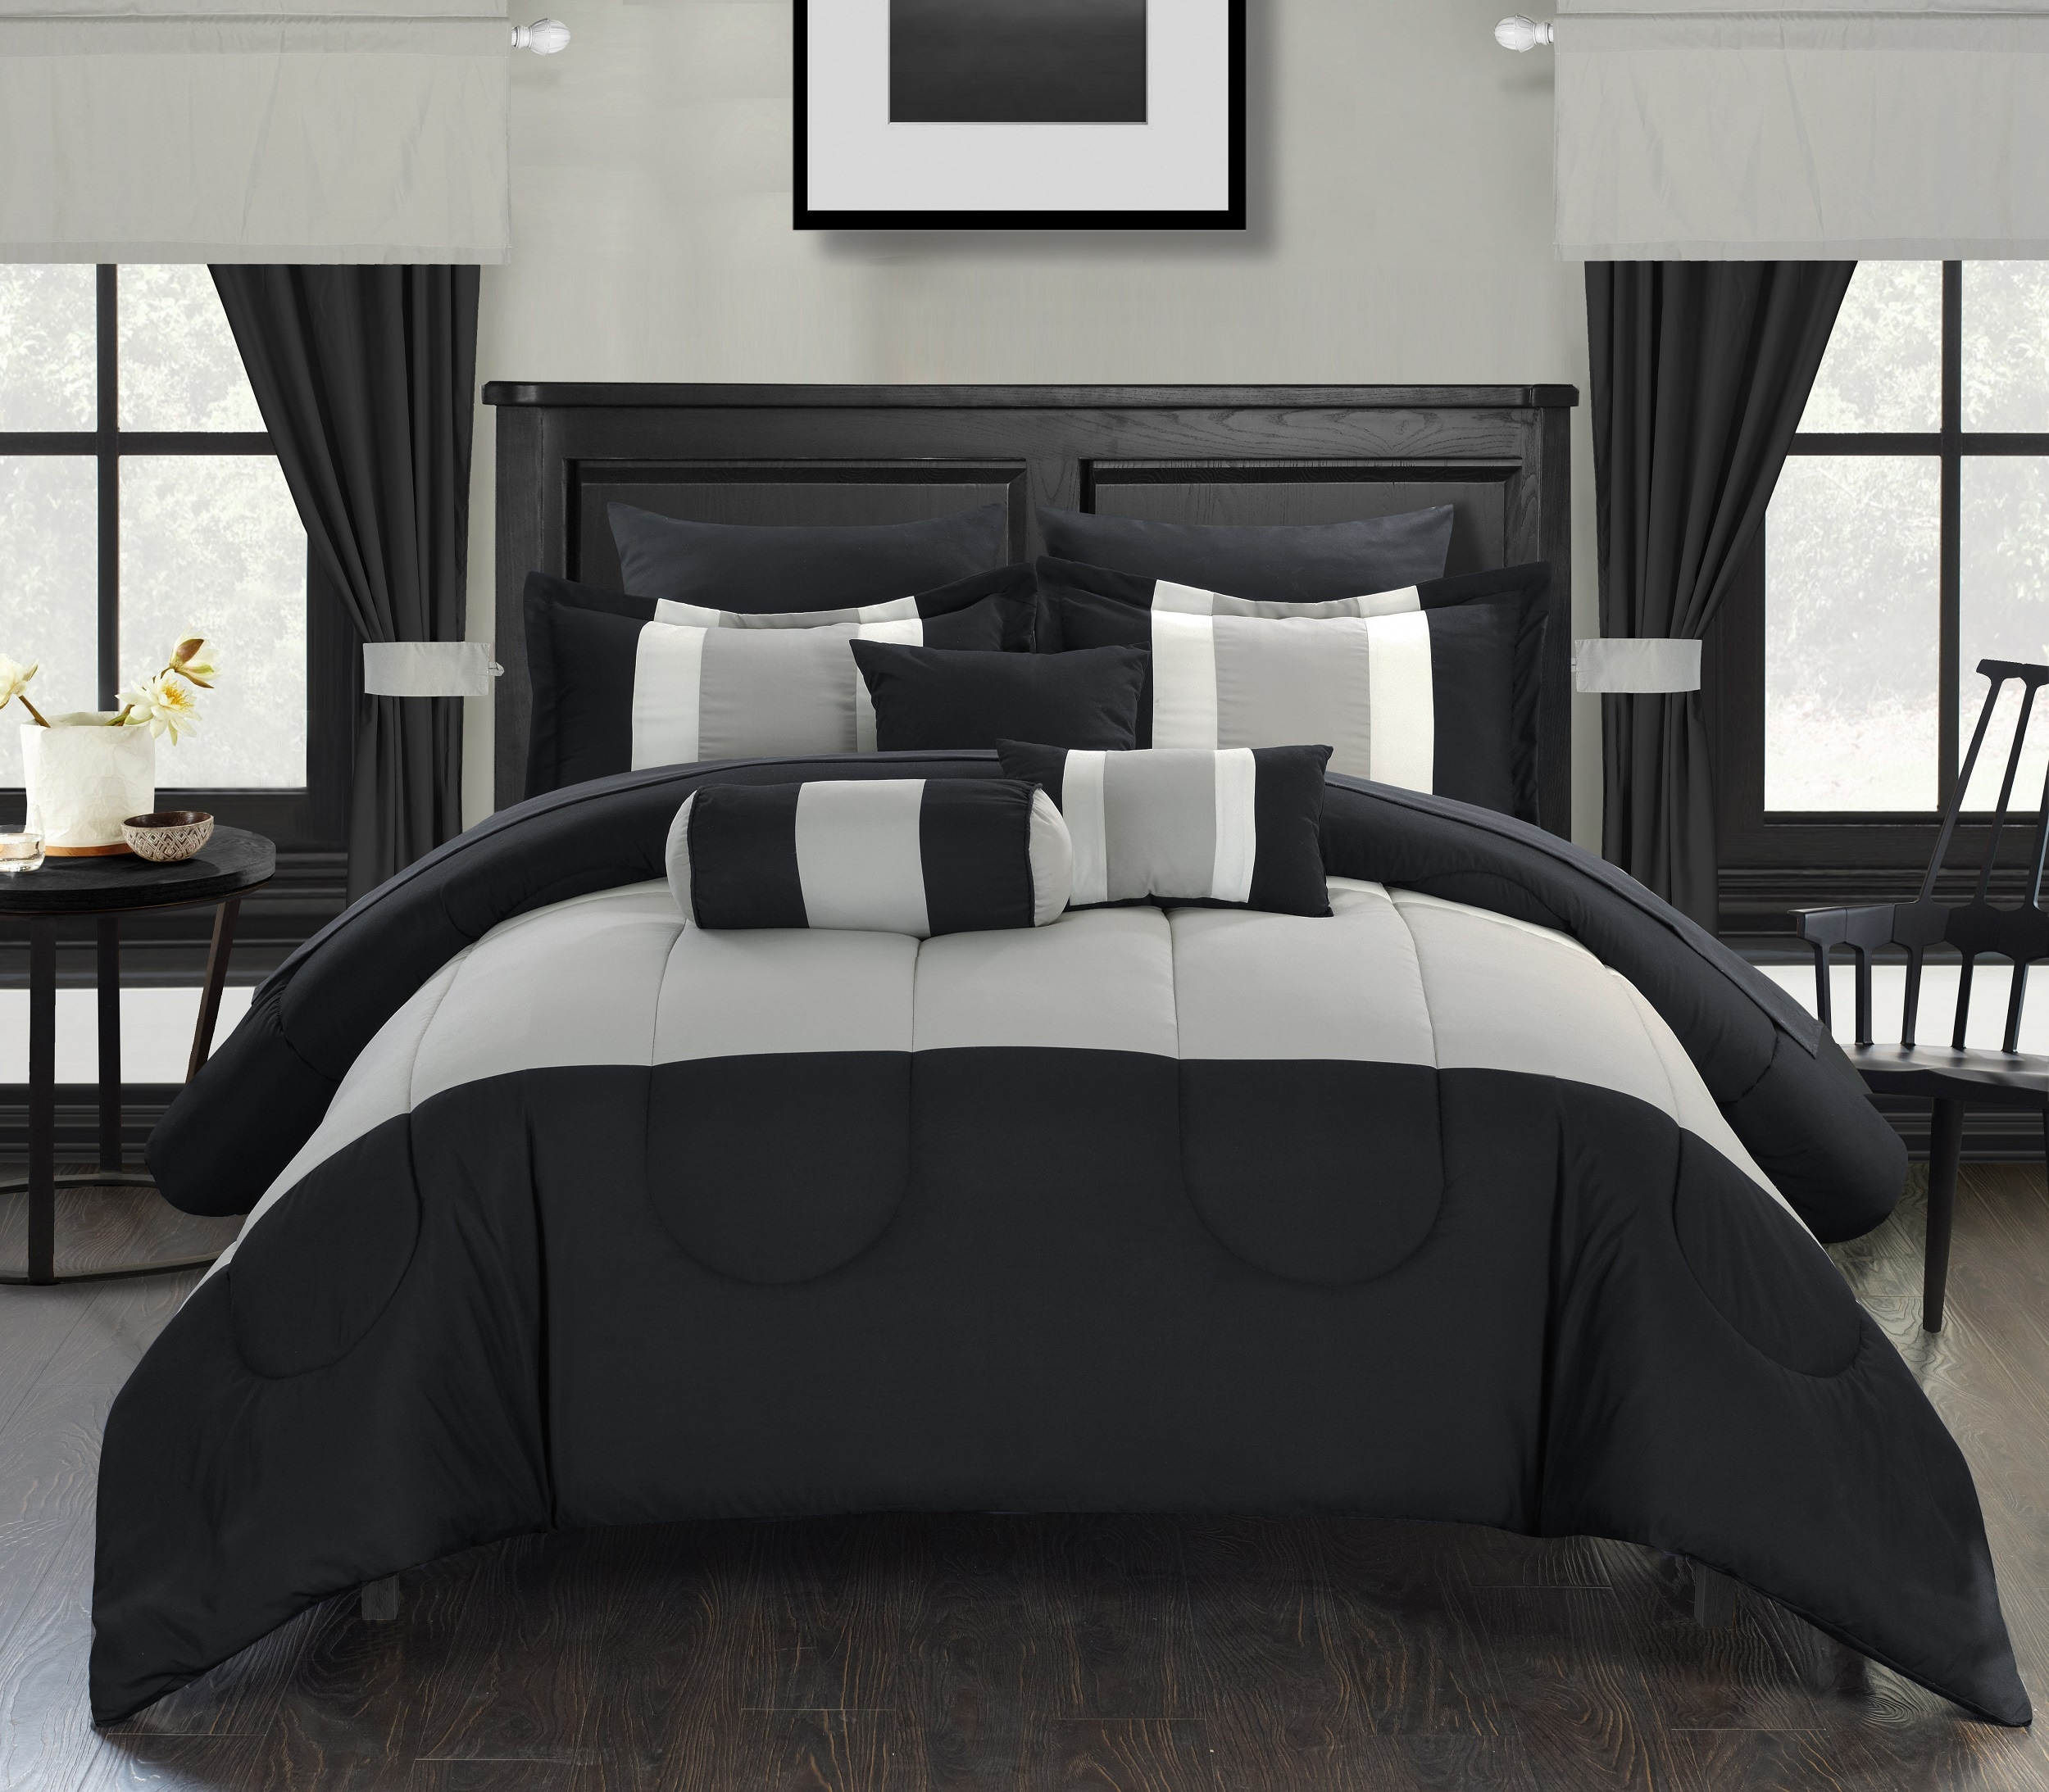 Chic Home 20-piece Whitehall Bed-in-a-Bag Black Comforter Set with Sheets and Window Treatment